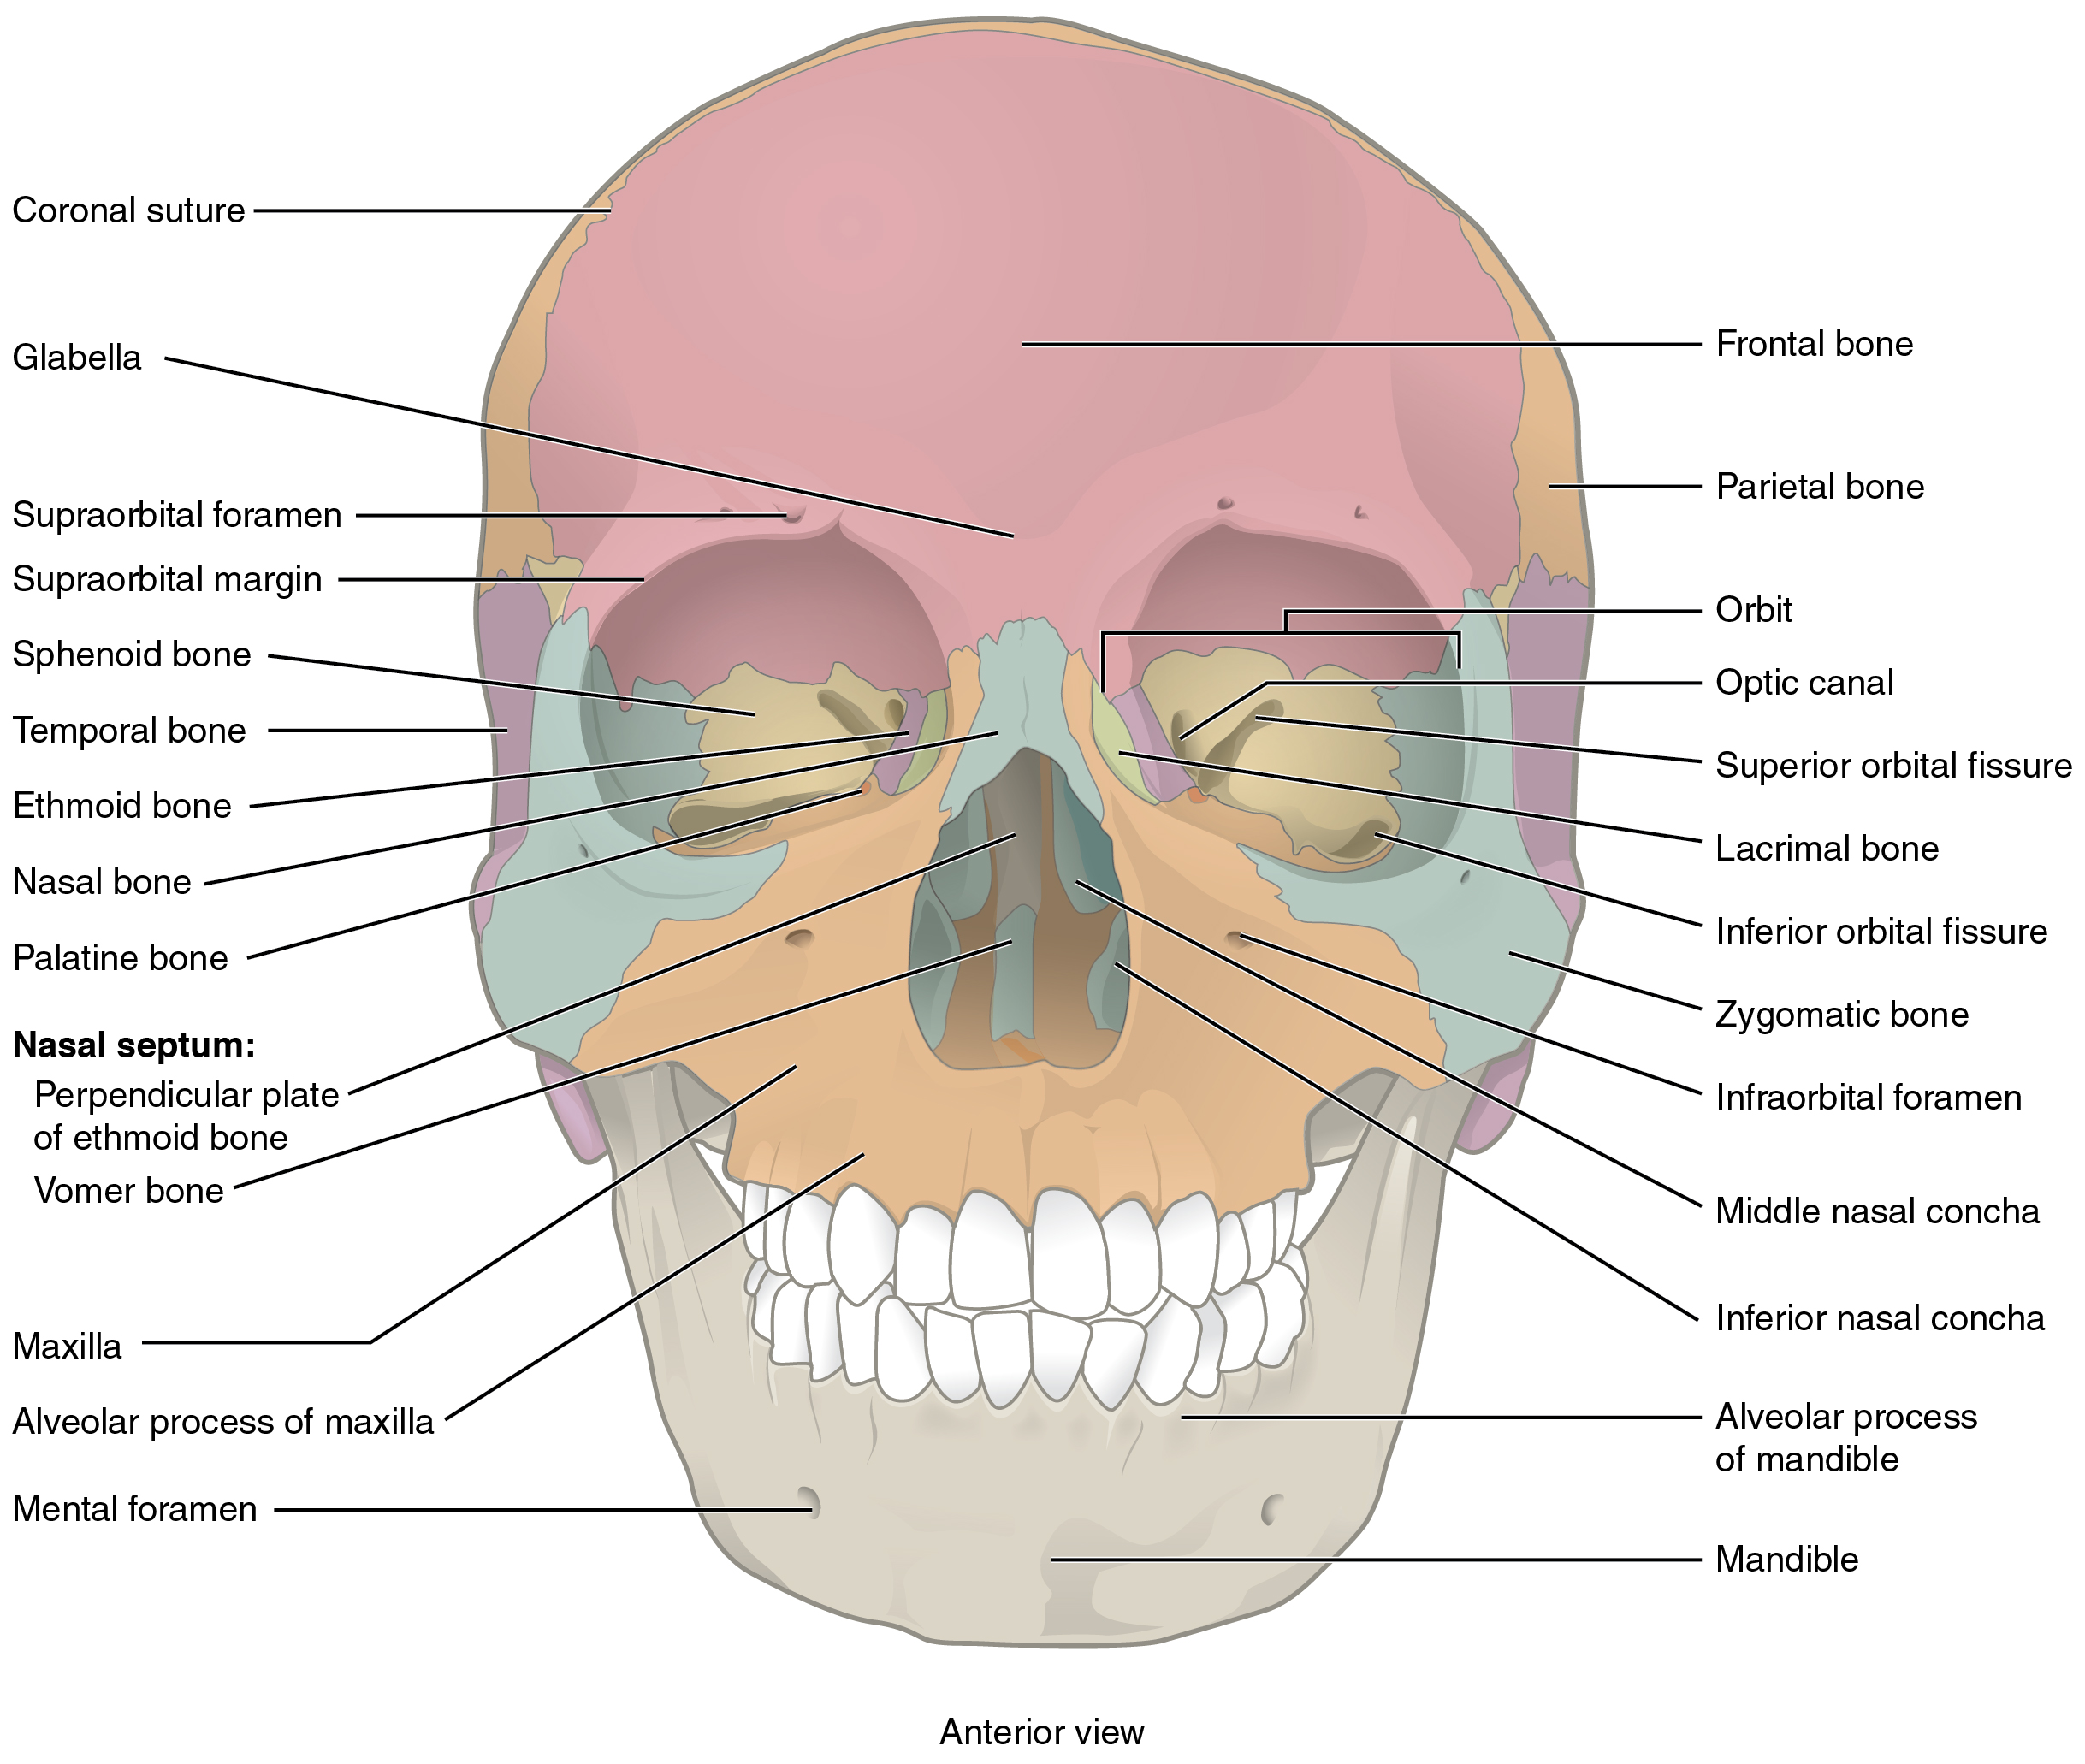 This image shows the anterior view (from the front) of the human skull. The major bones on the skull are labeled.